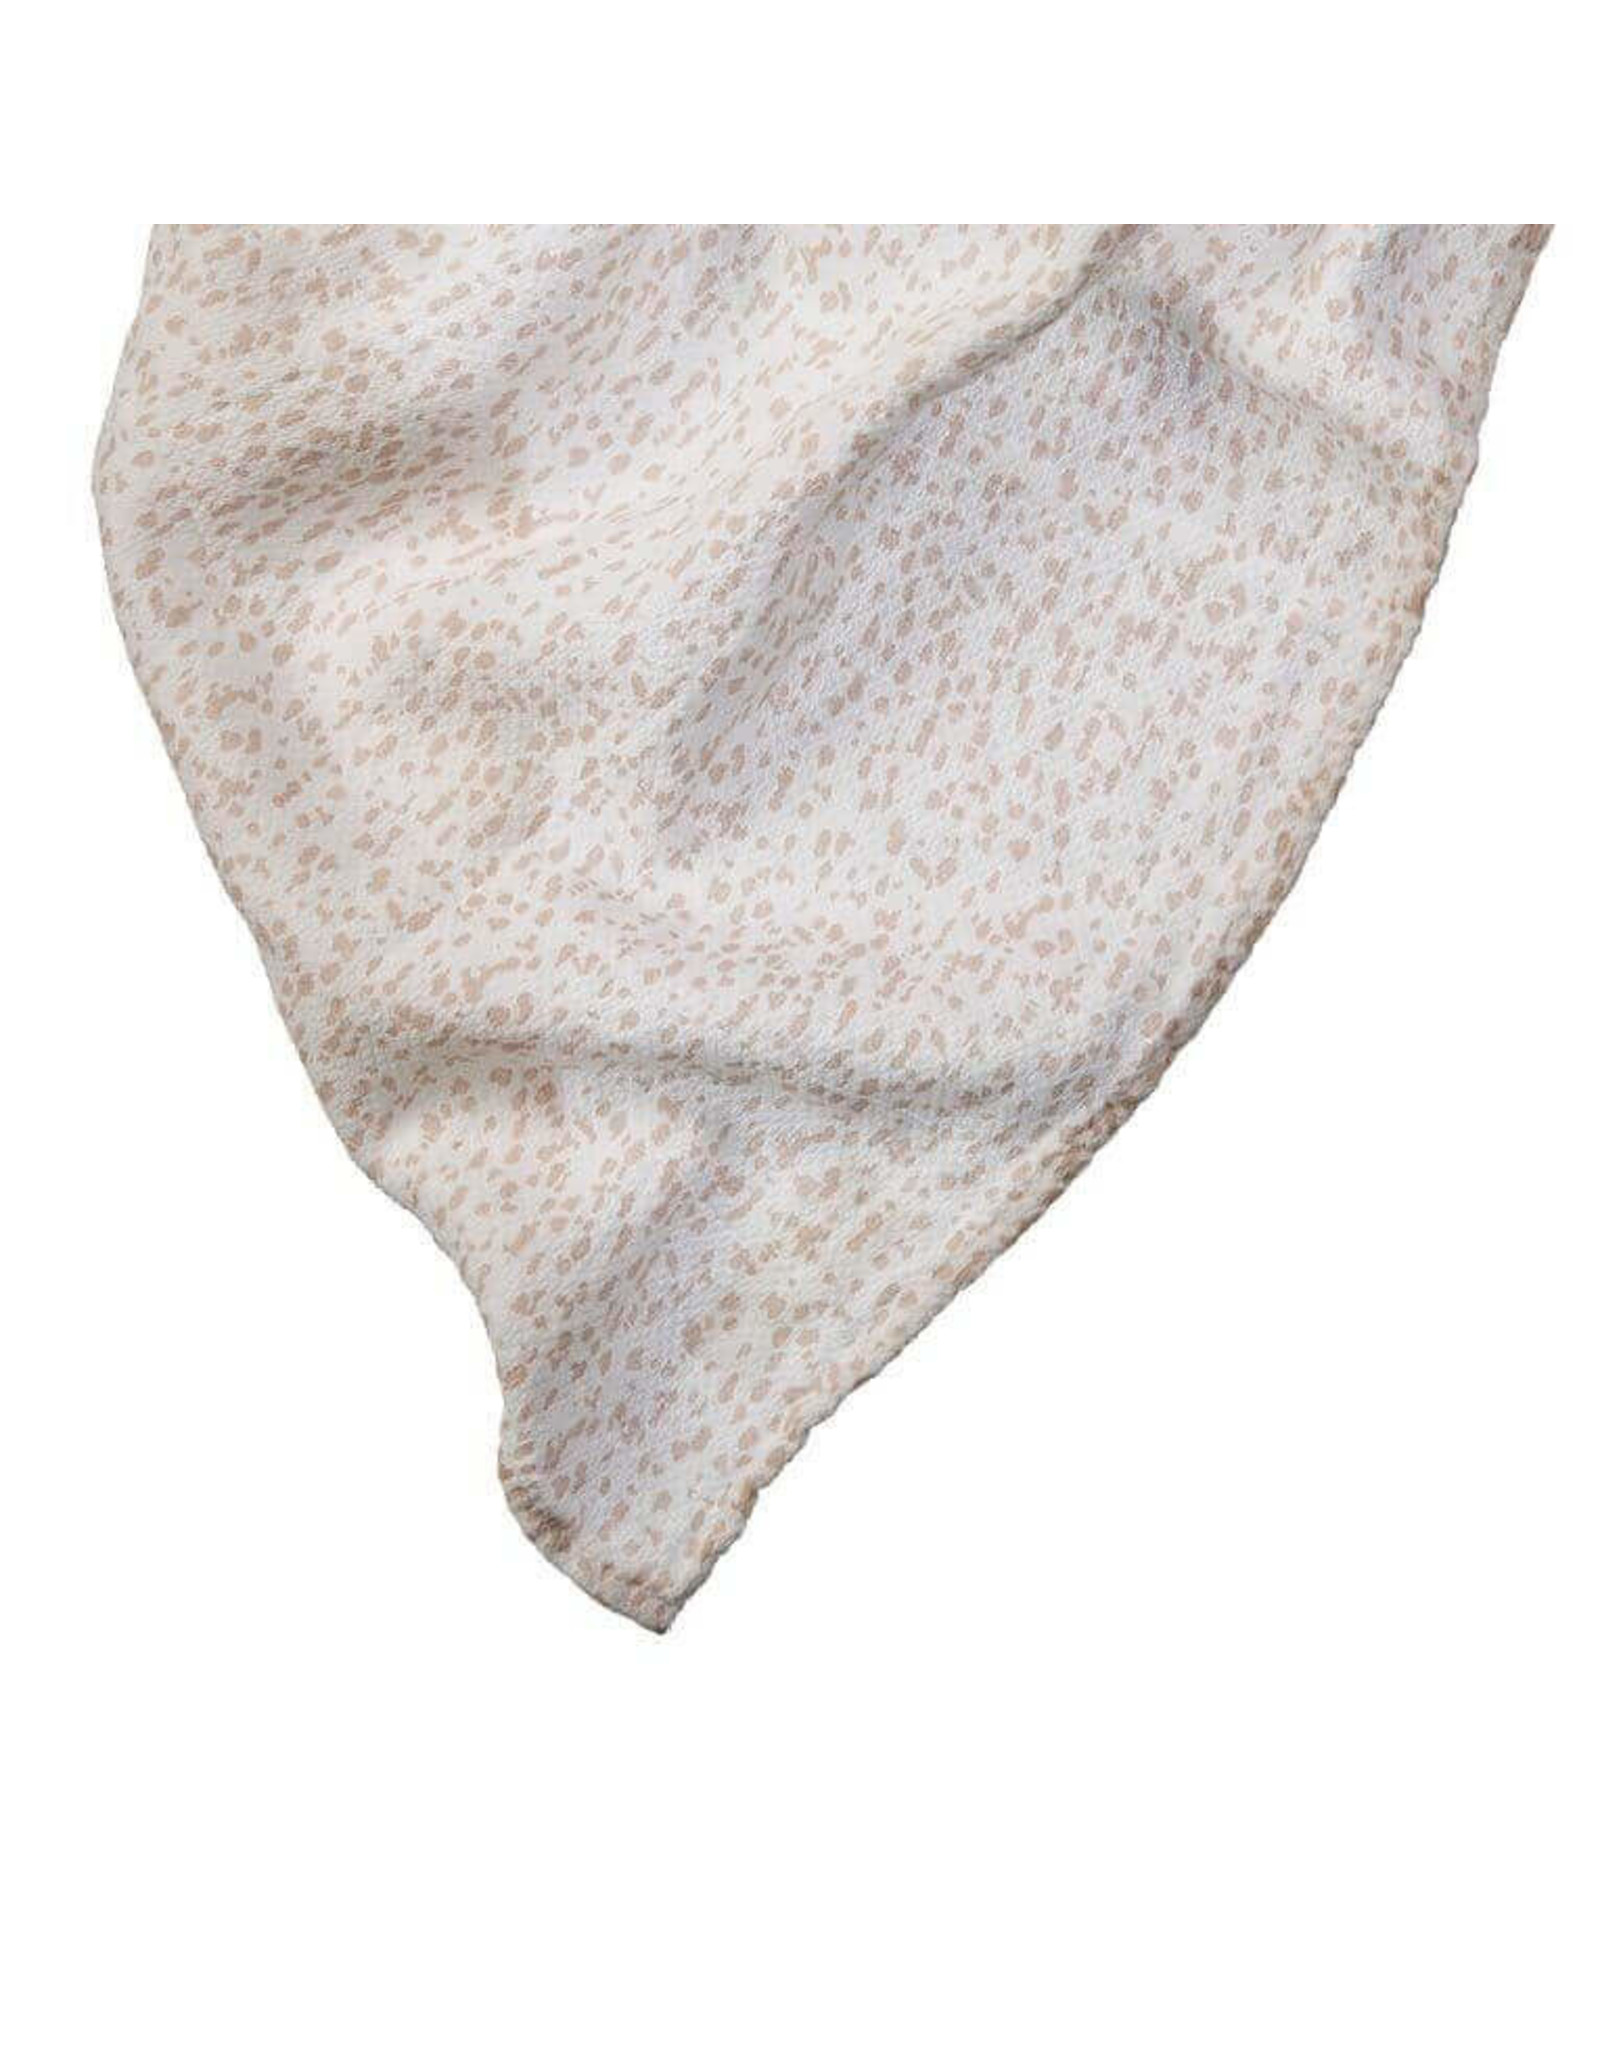 Mies & Co Mies & Co swaddle 120x120 Wild Child Chalk Pink